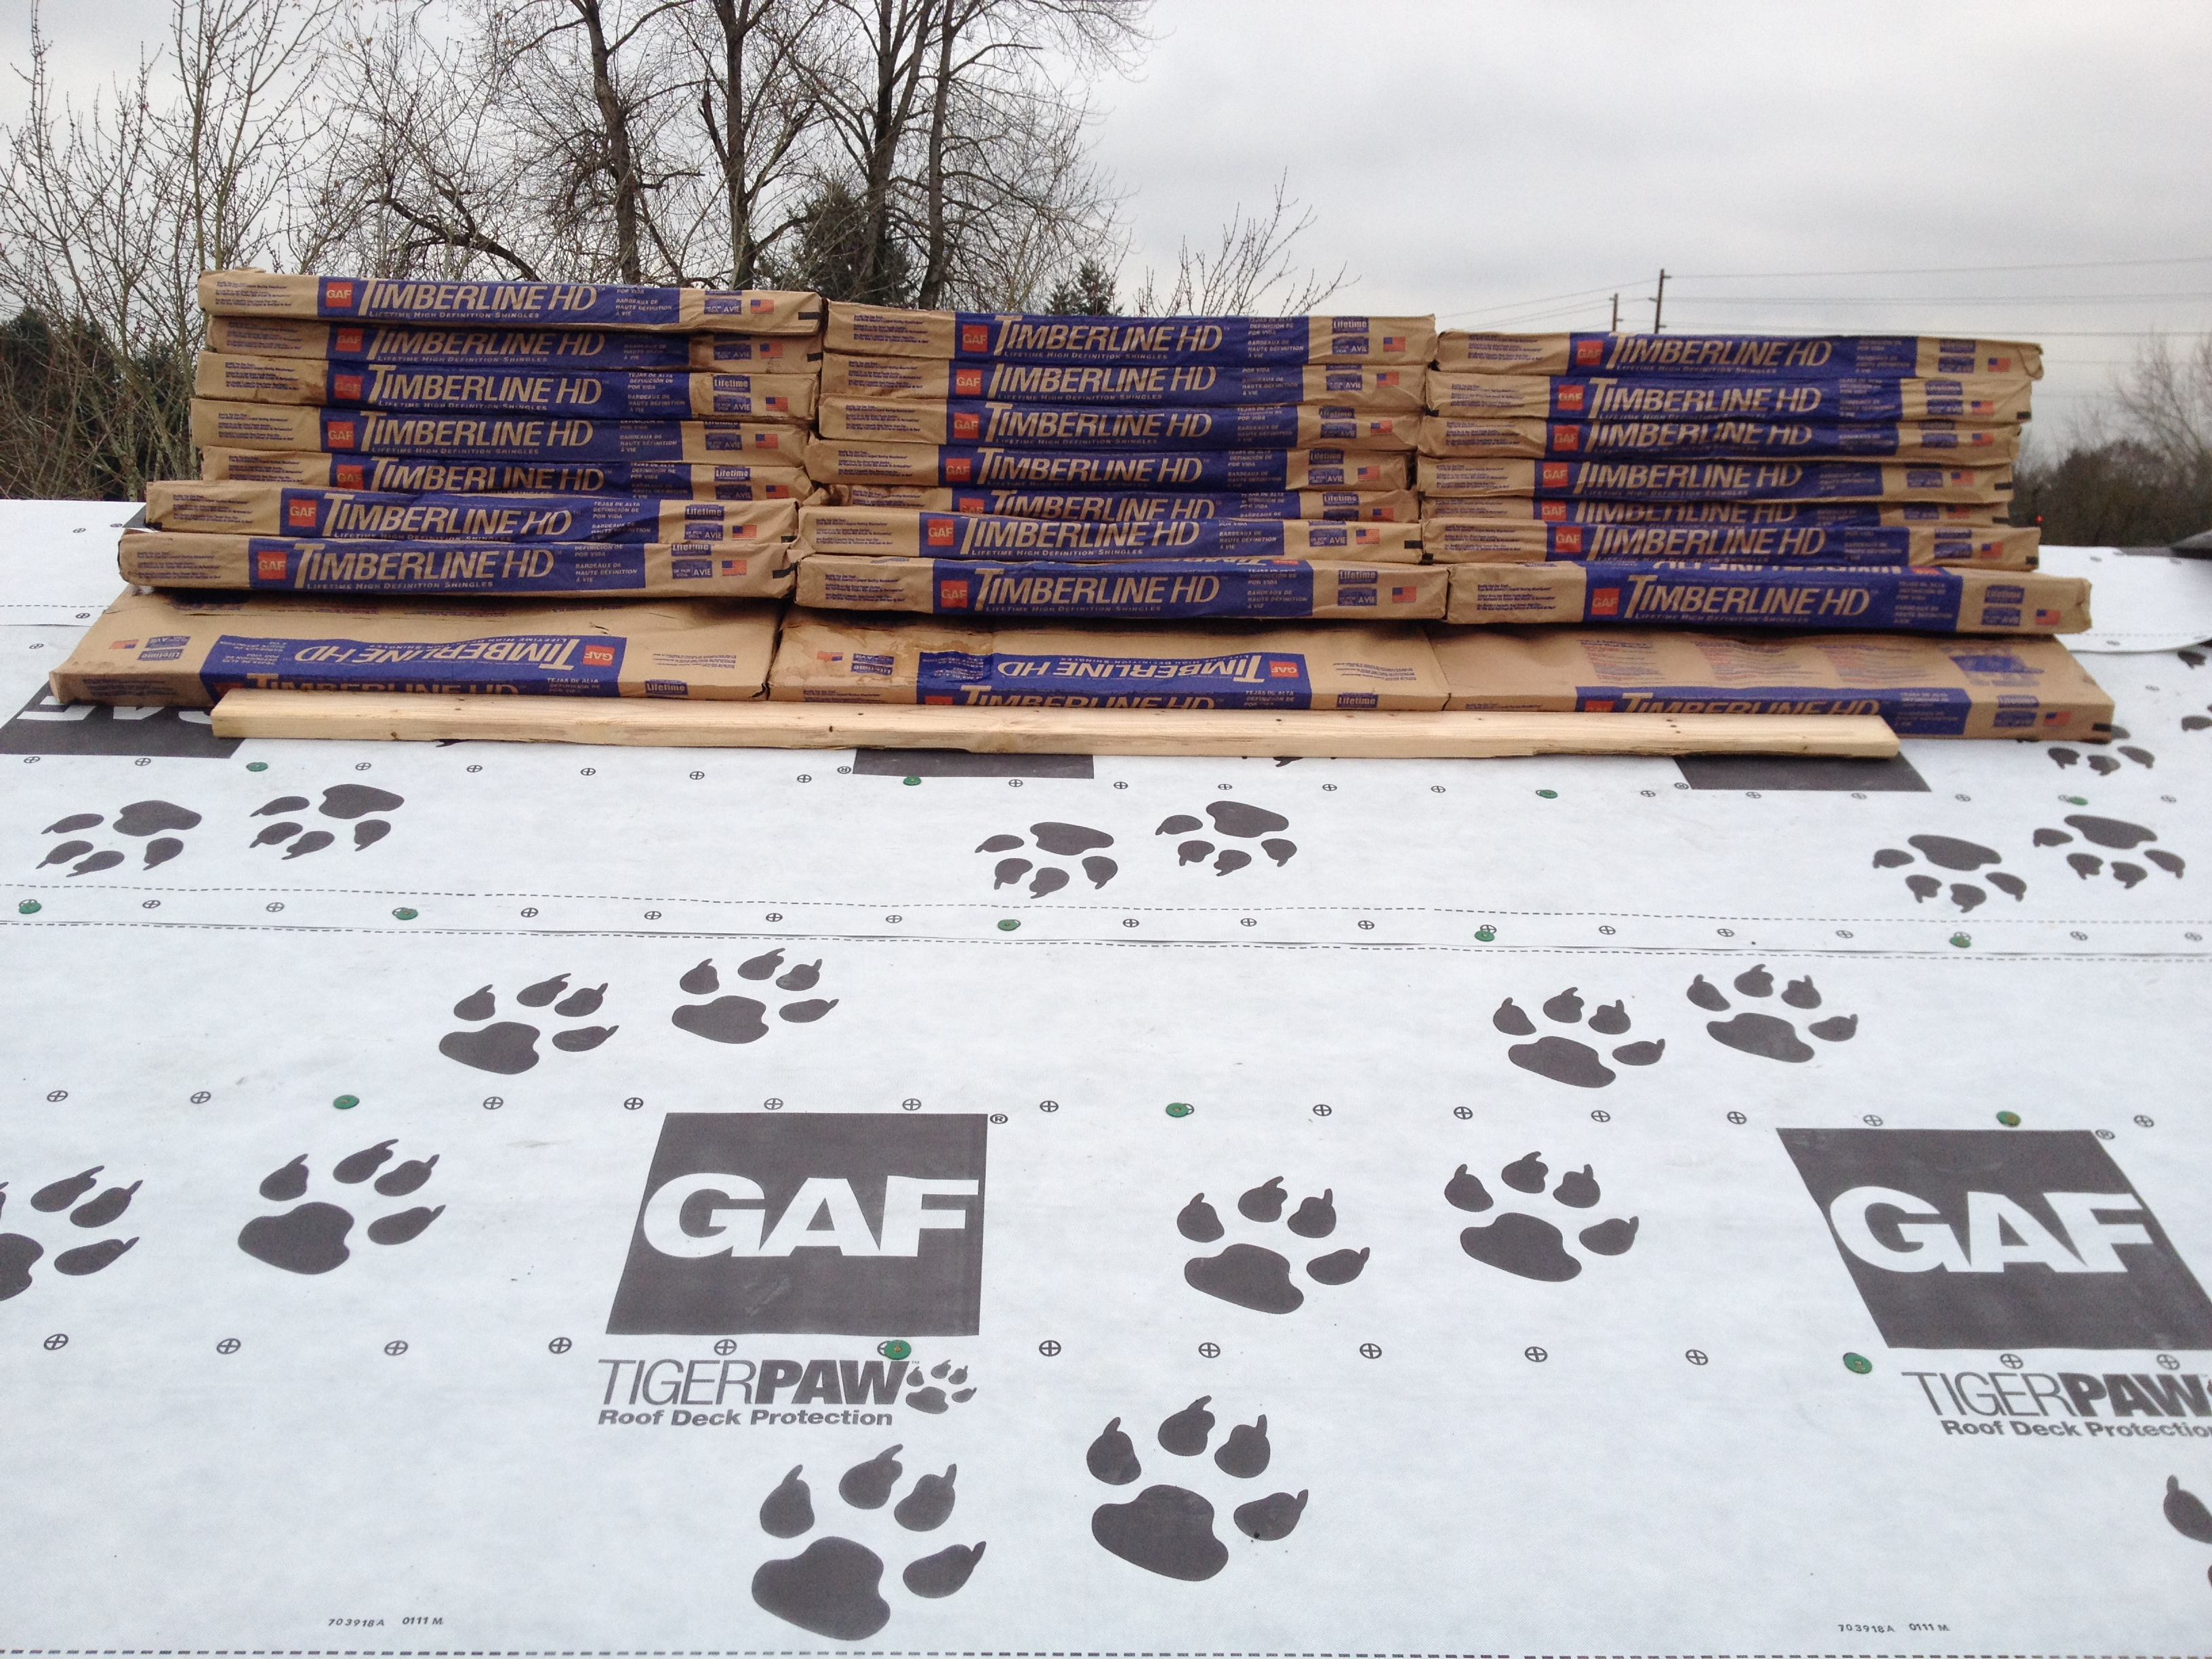 Sumner-Roof-Tigerpaw-Synthetic-Roofing-Underlayment